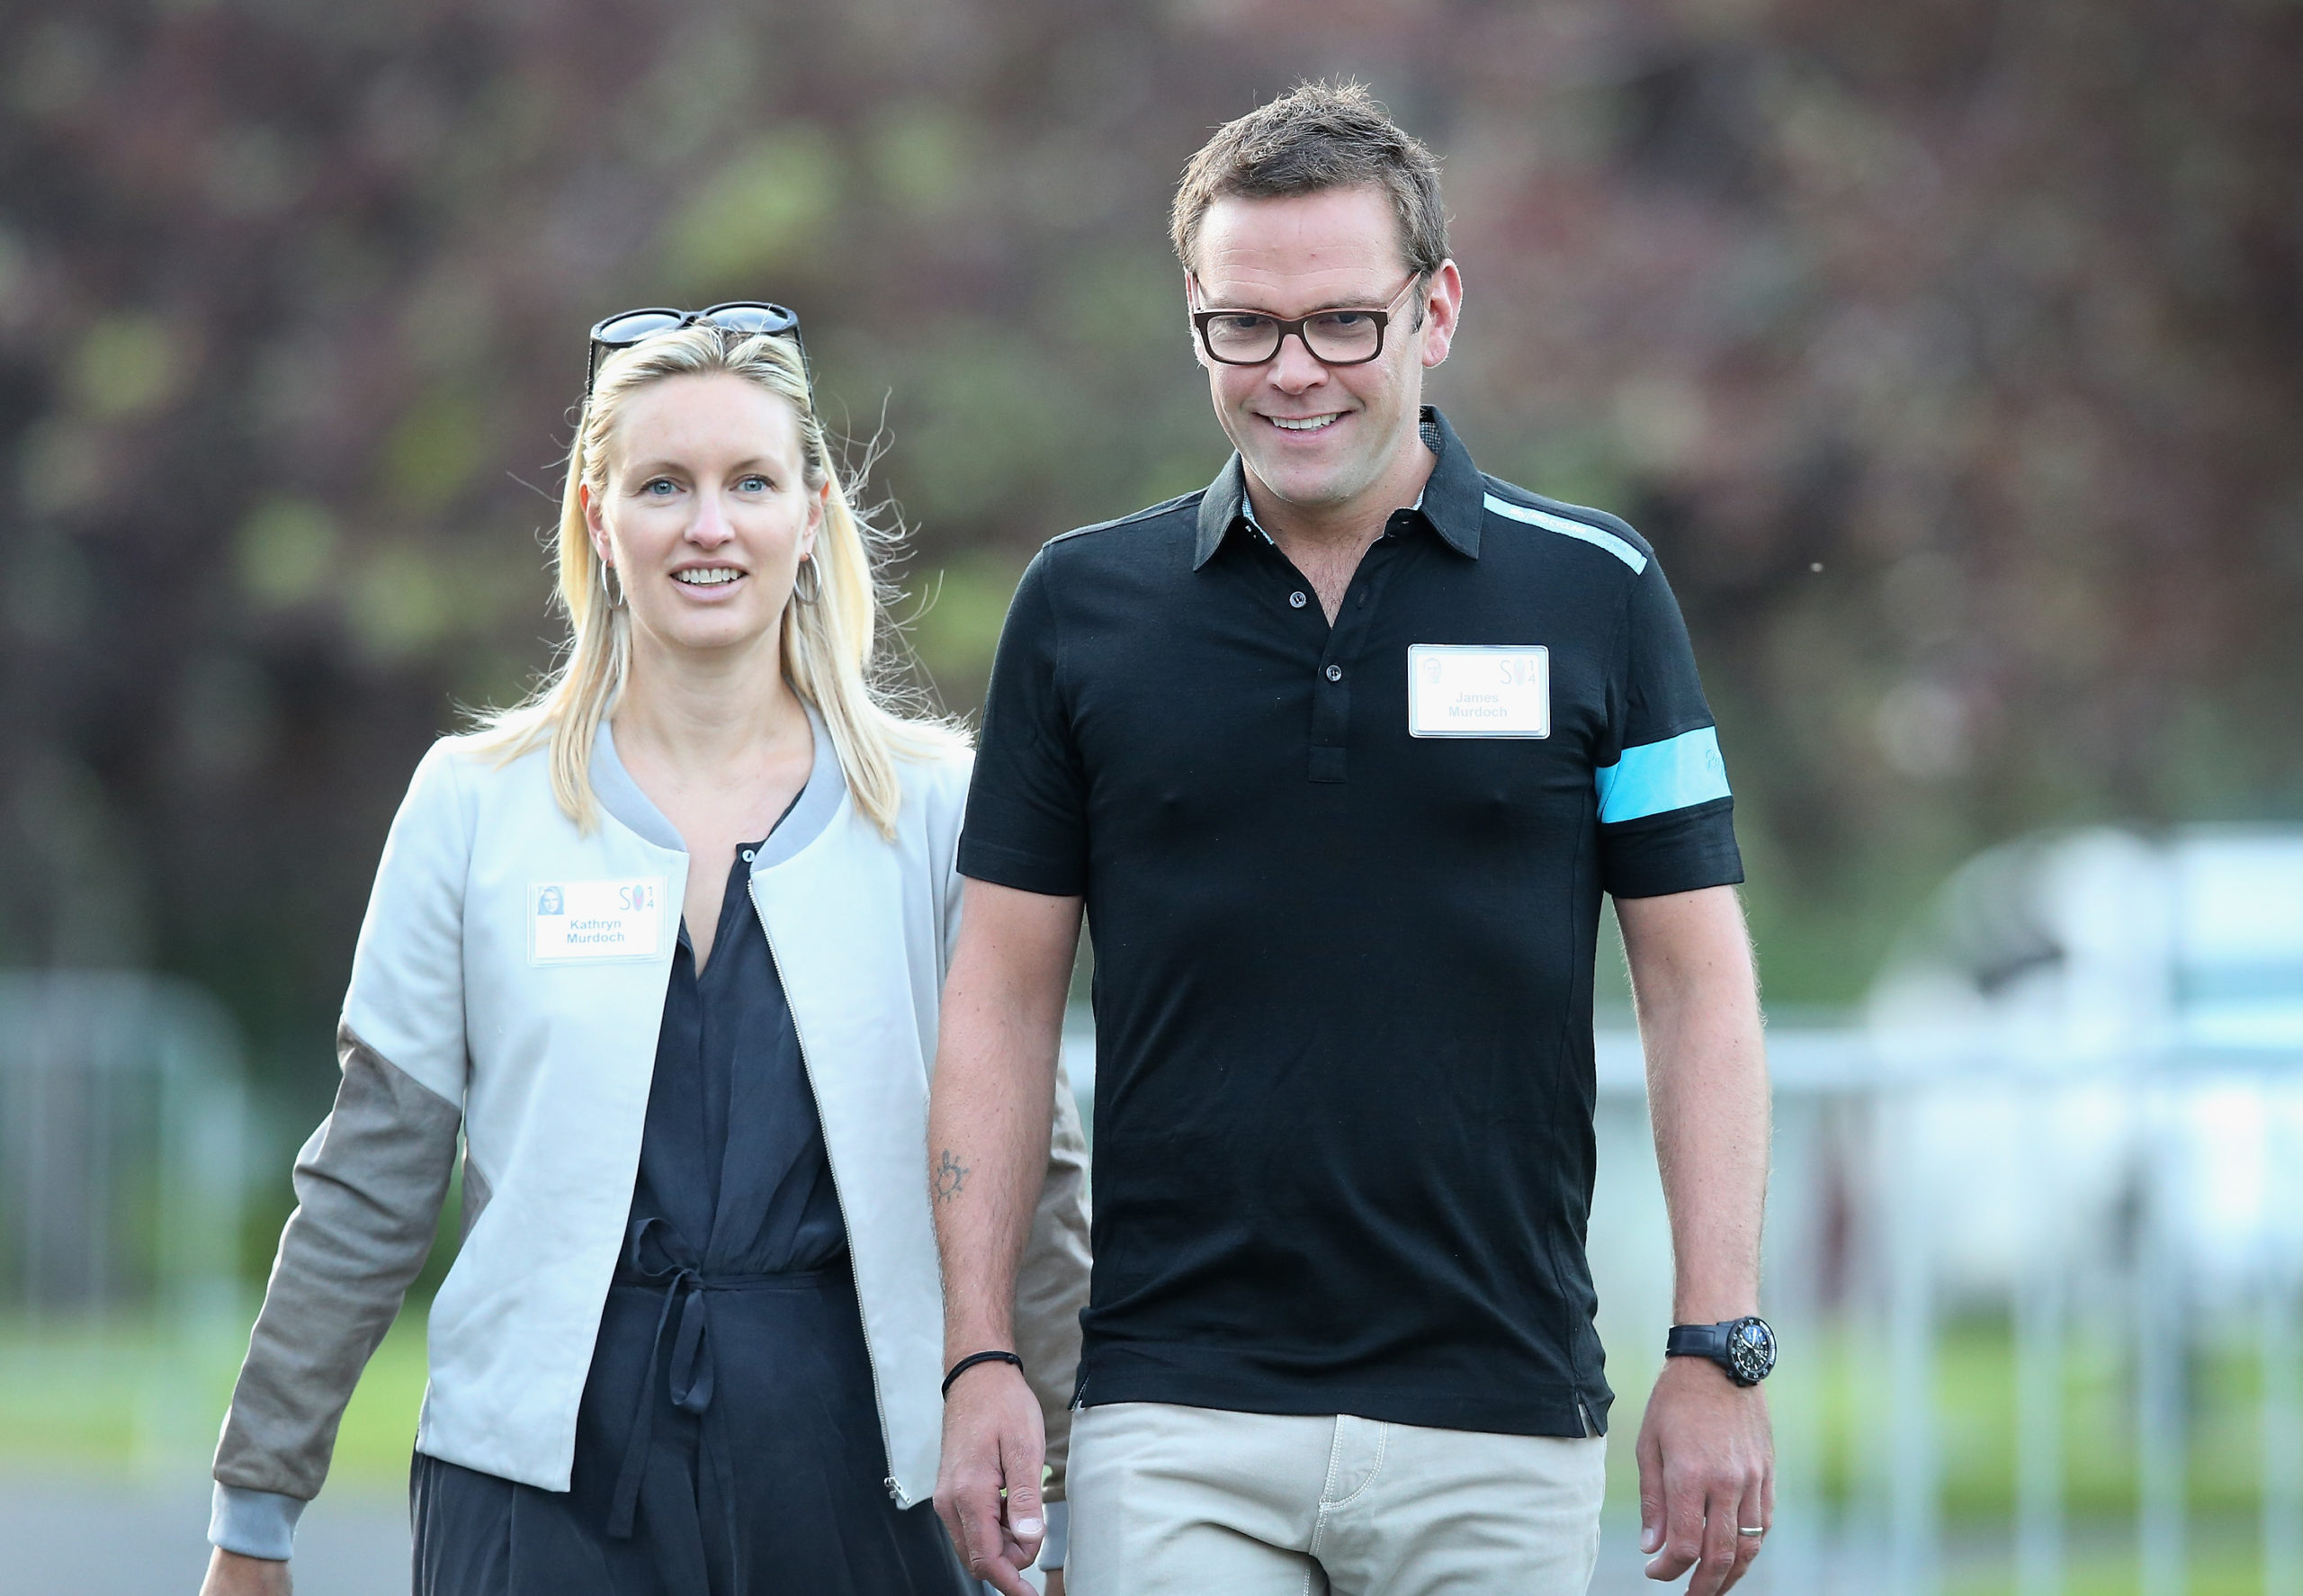 James and Kathryn Murdoch at the Allen & Company Sun Valley Conference on July 10, 2014 in Sun Valley, Idaho. (Scott Olson/Getty Images)